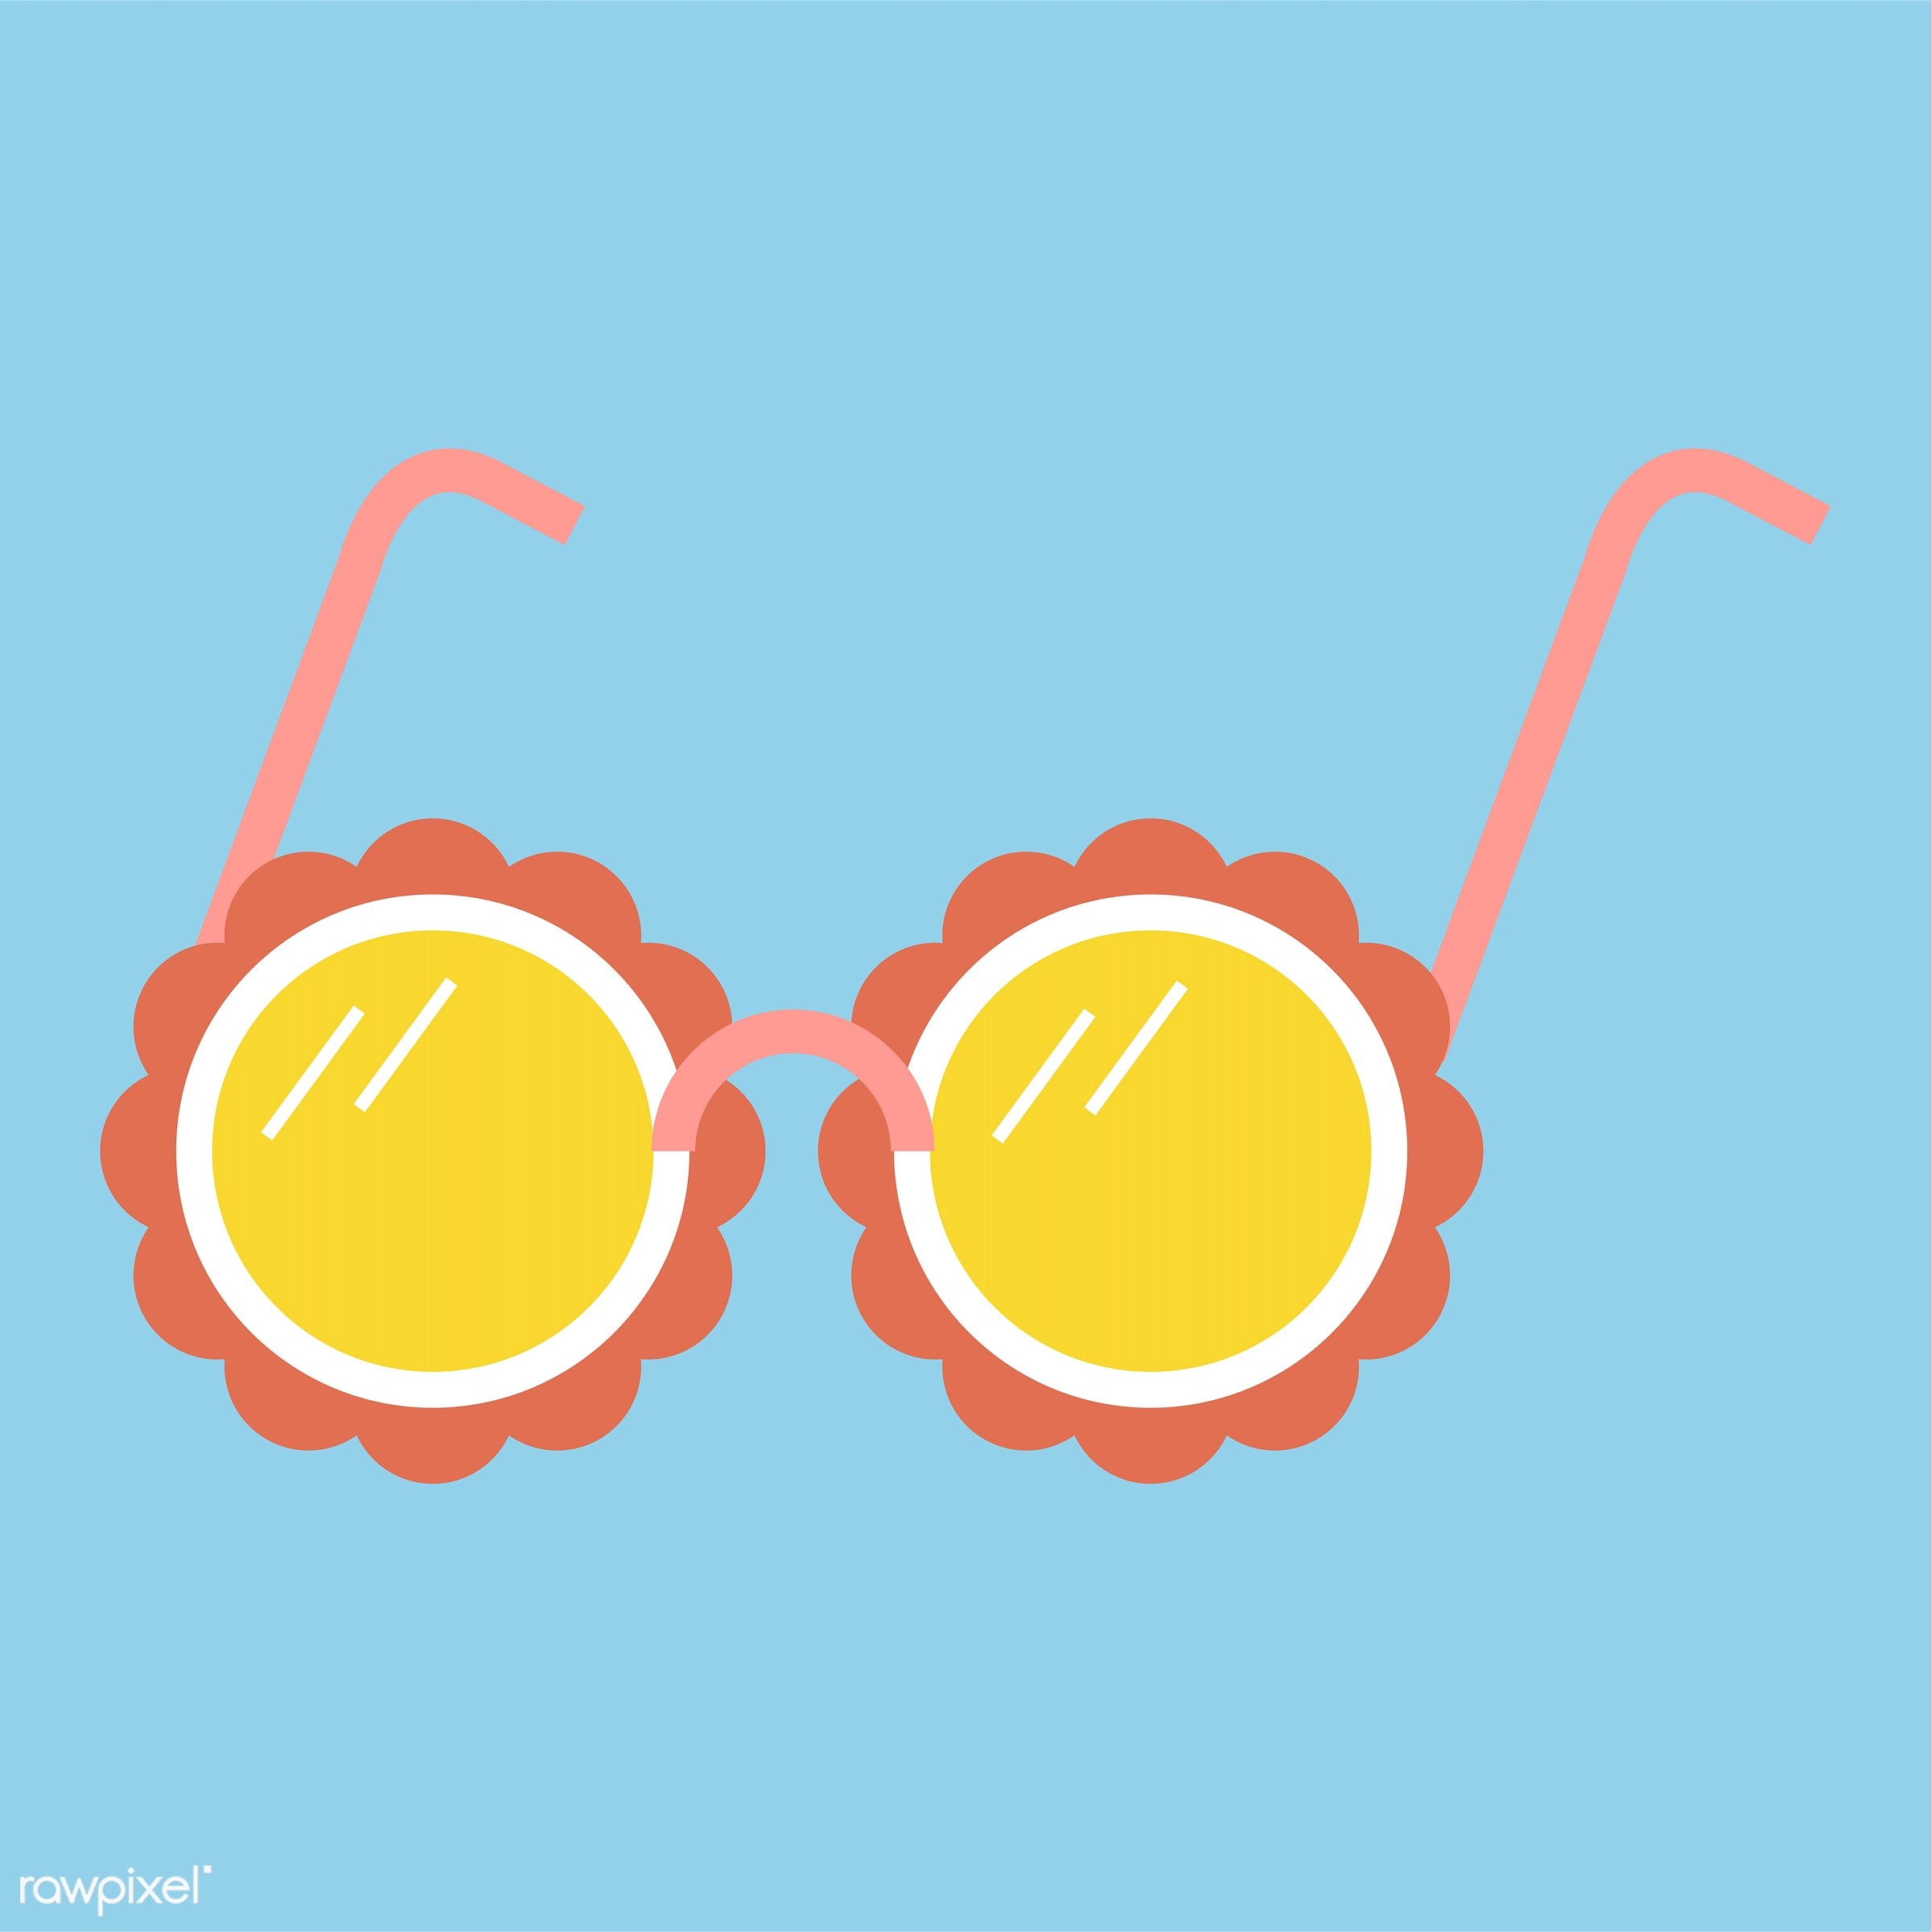 vector, illustration, graphic, cute, sweet, girly, pastel, sunglasses, isolated, summer, vector'